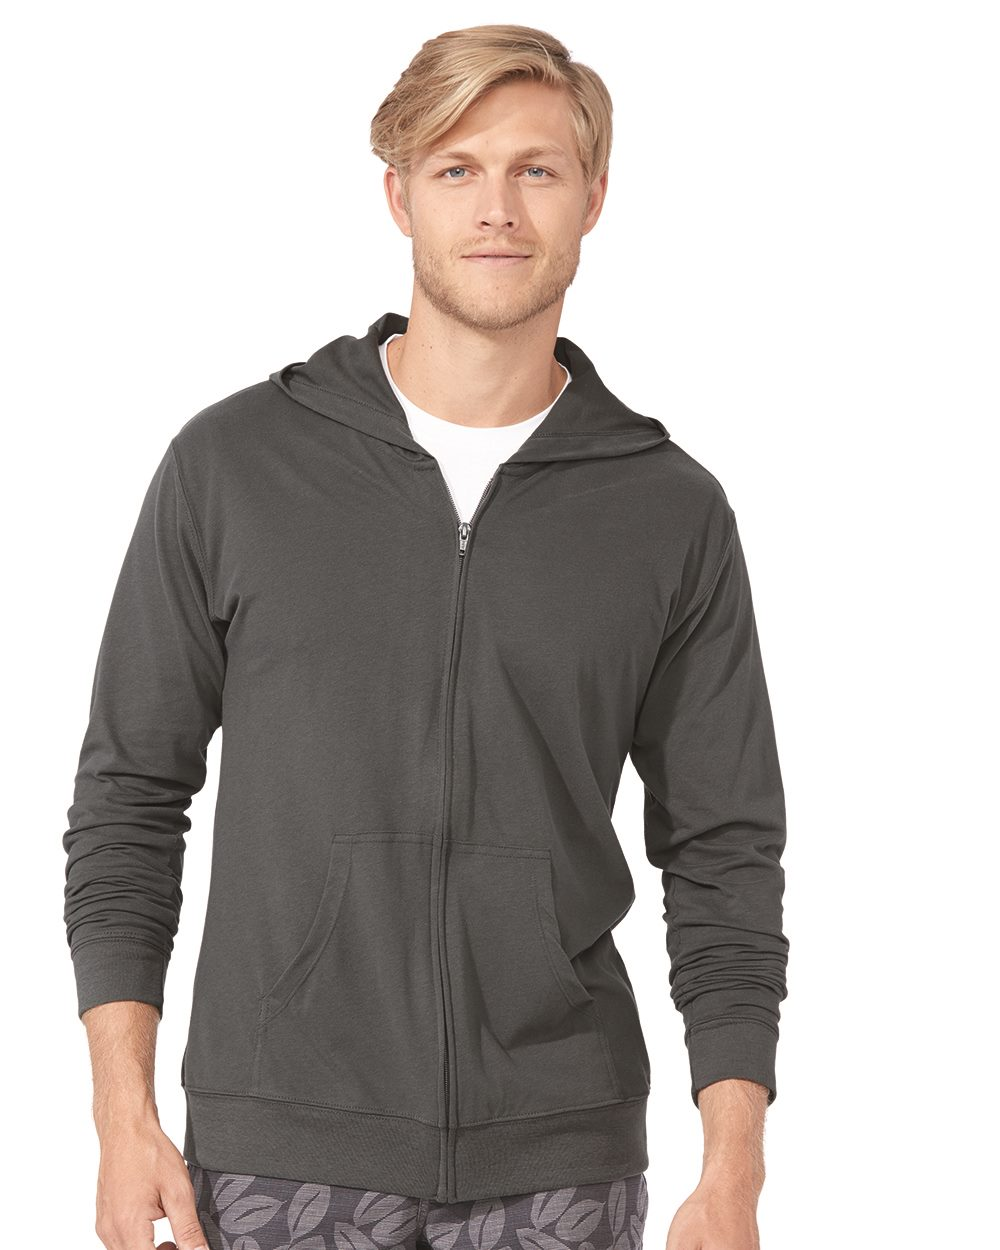 Next Level 6491 - Unisex Sueded Hooded Zip Tee